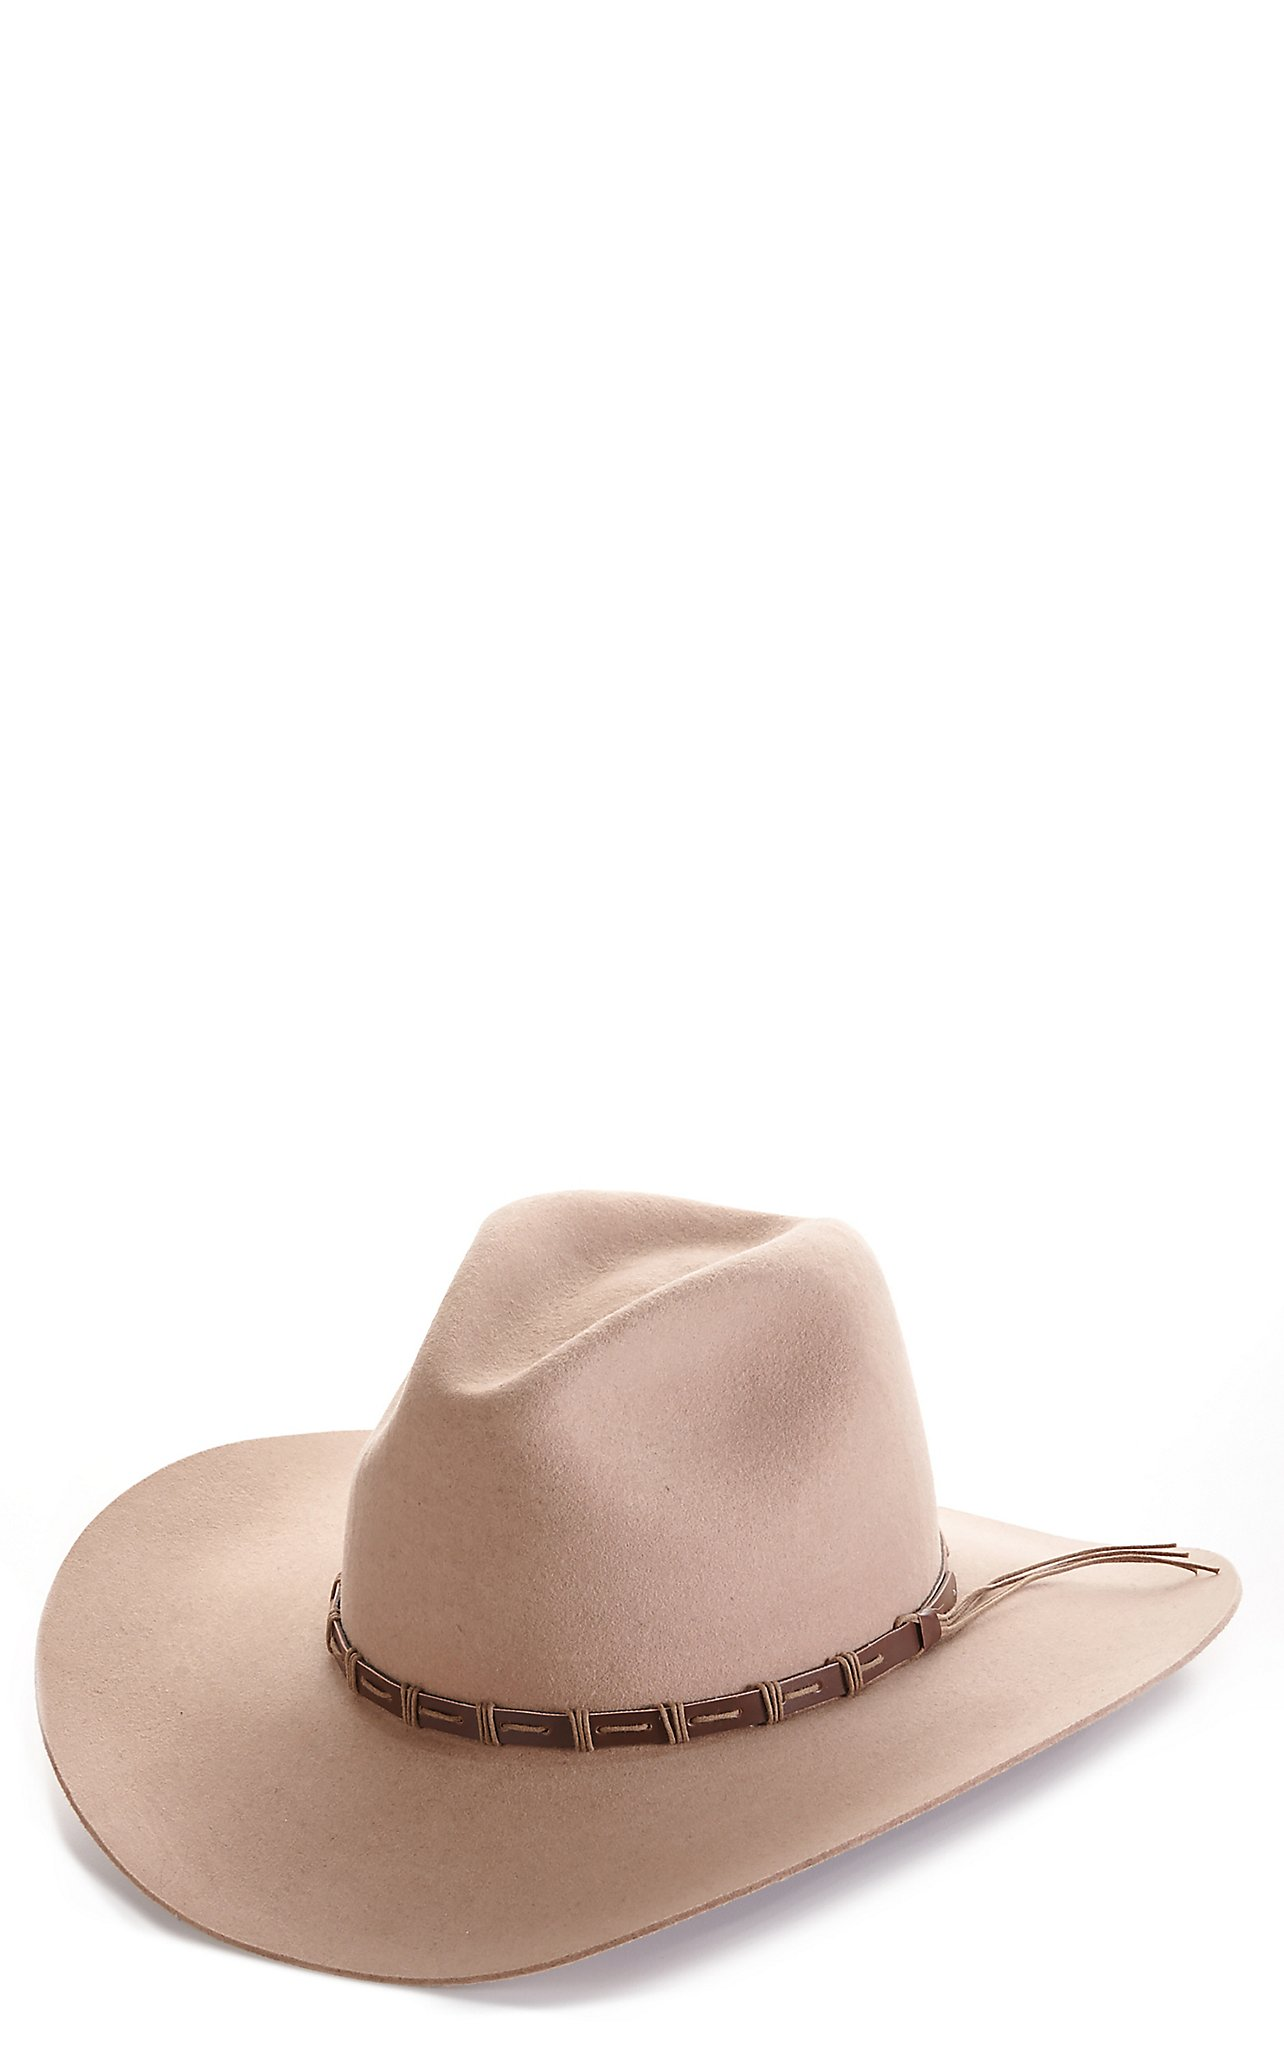 Rodeo King 3X Tracker Pecan Banded Long Oval Wool Cowboy Hat 5dc16d92380